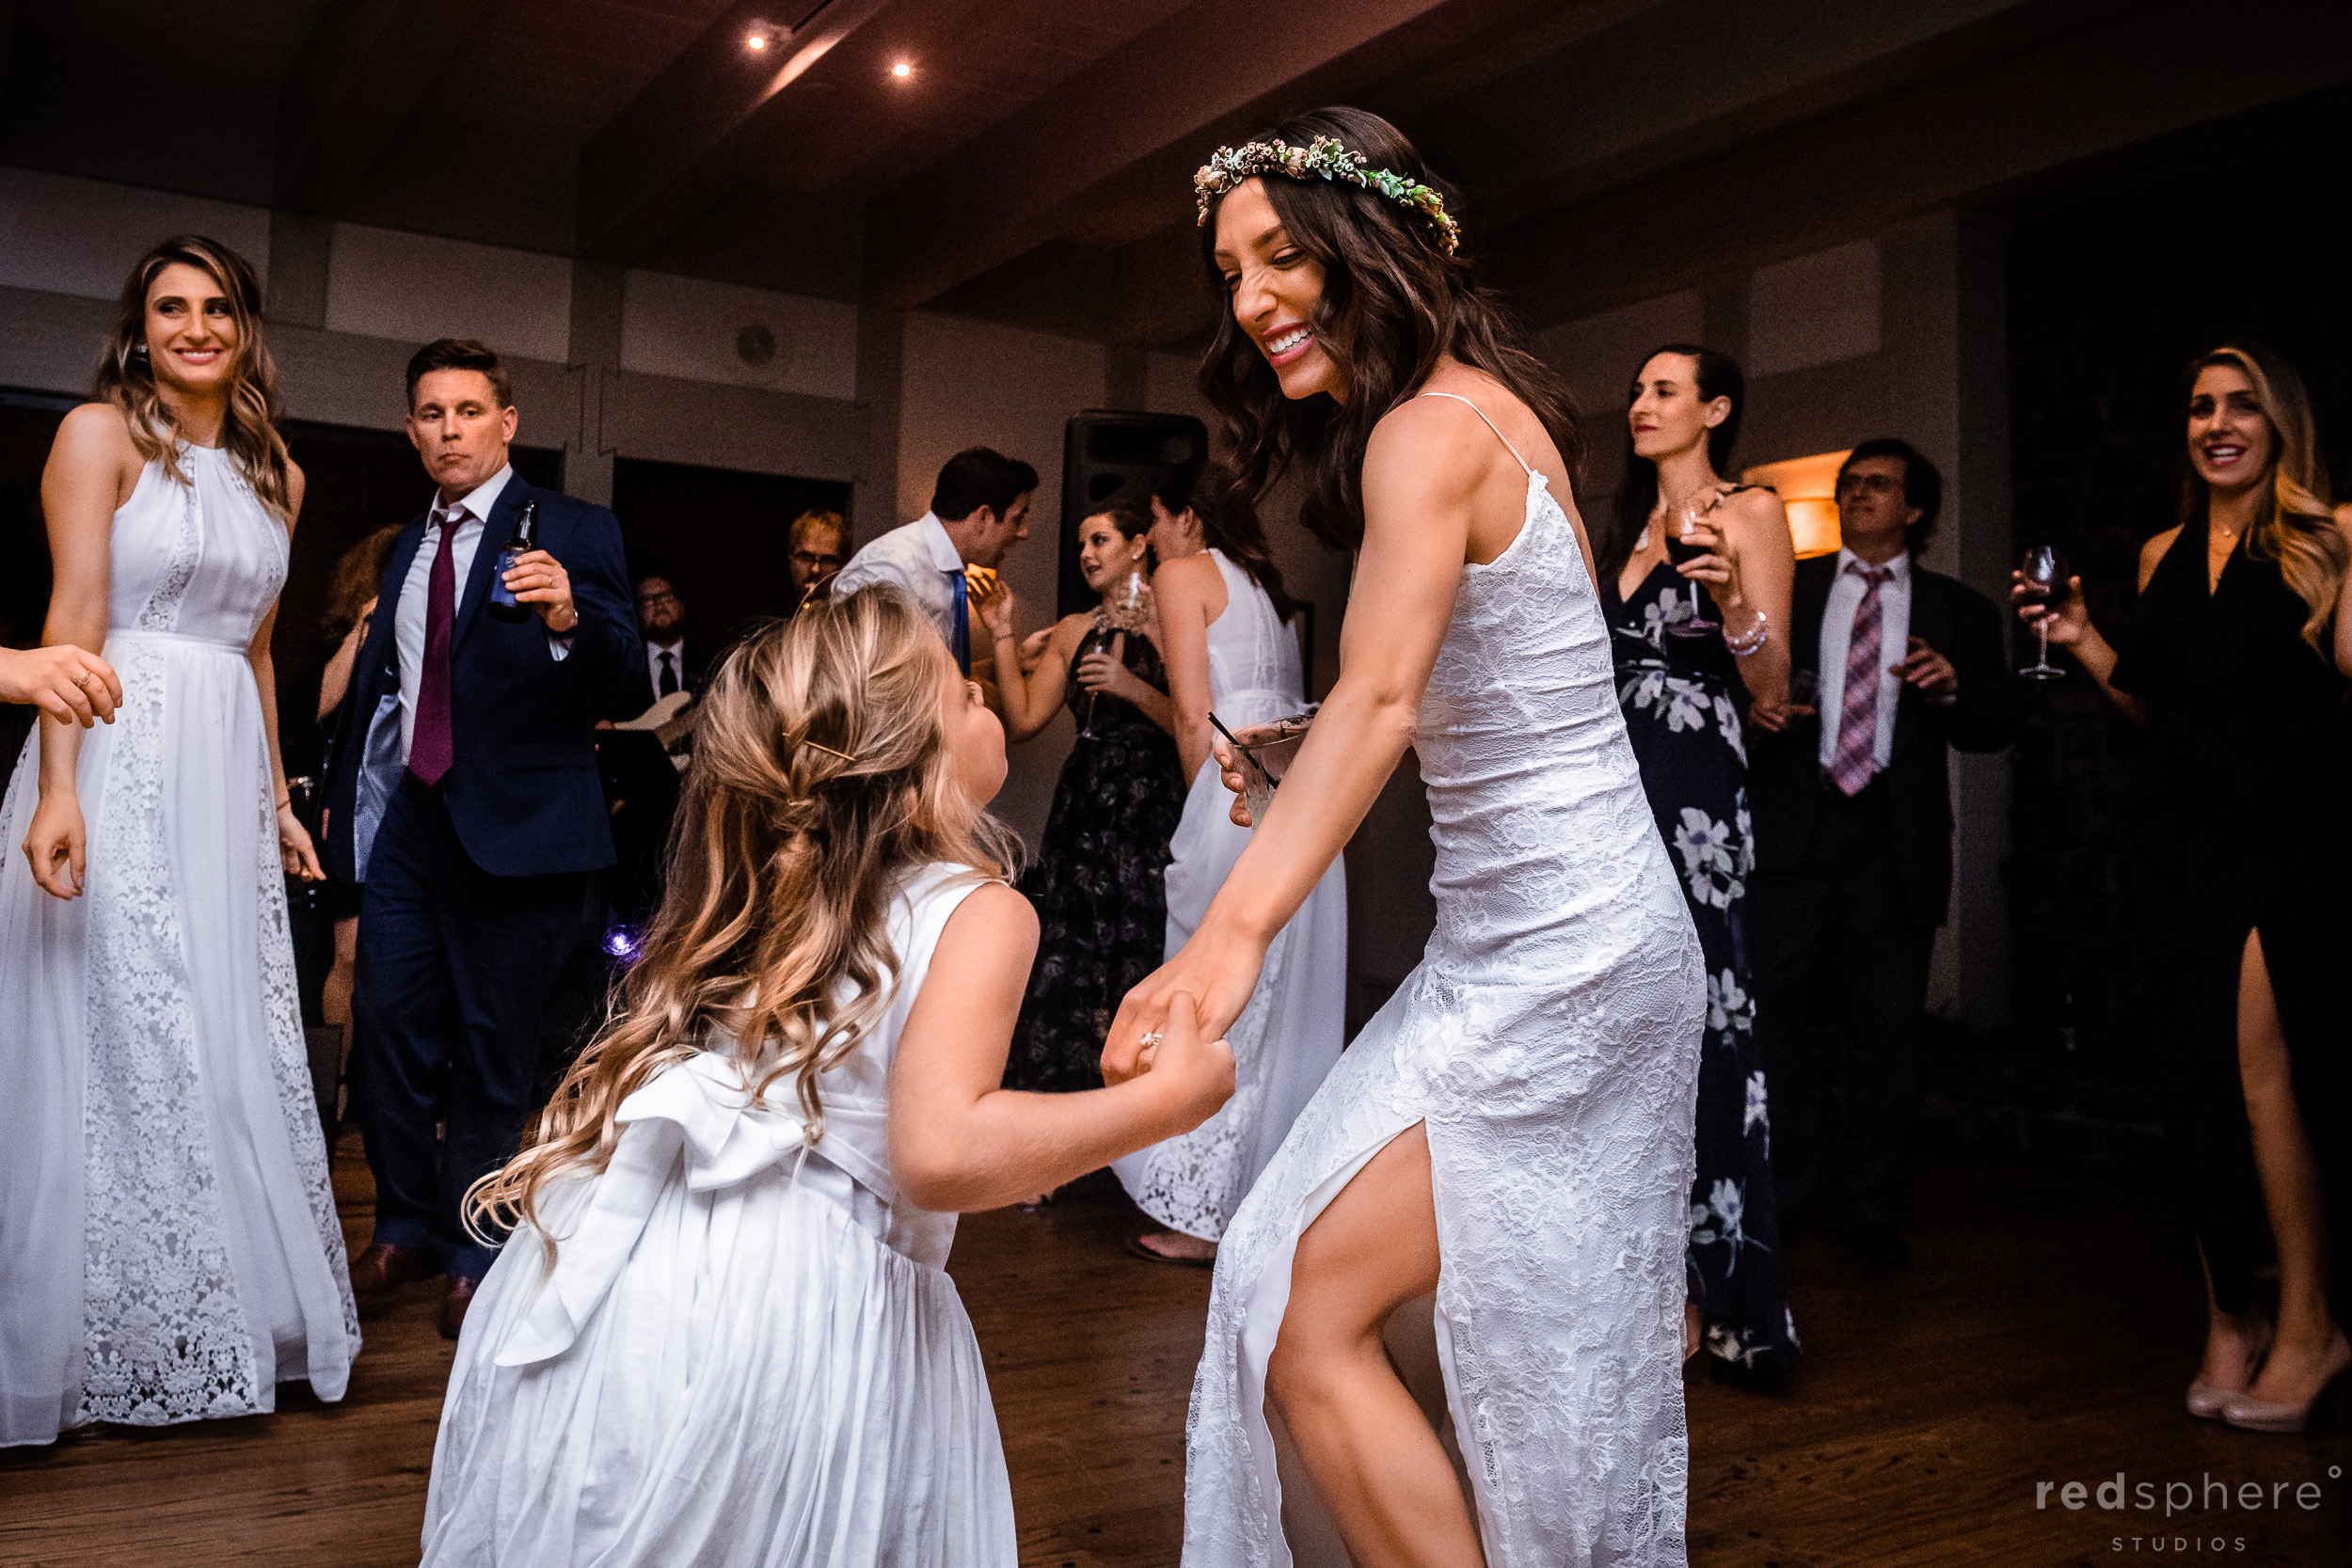 Wedding guests dancing during a wedding reception at Harvest Inn By Charlie Palmer, St. Helena, Napa Valley